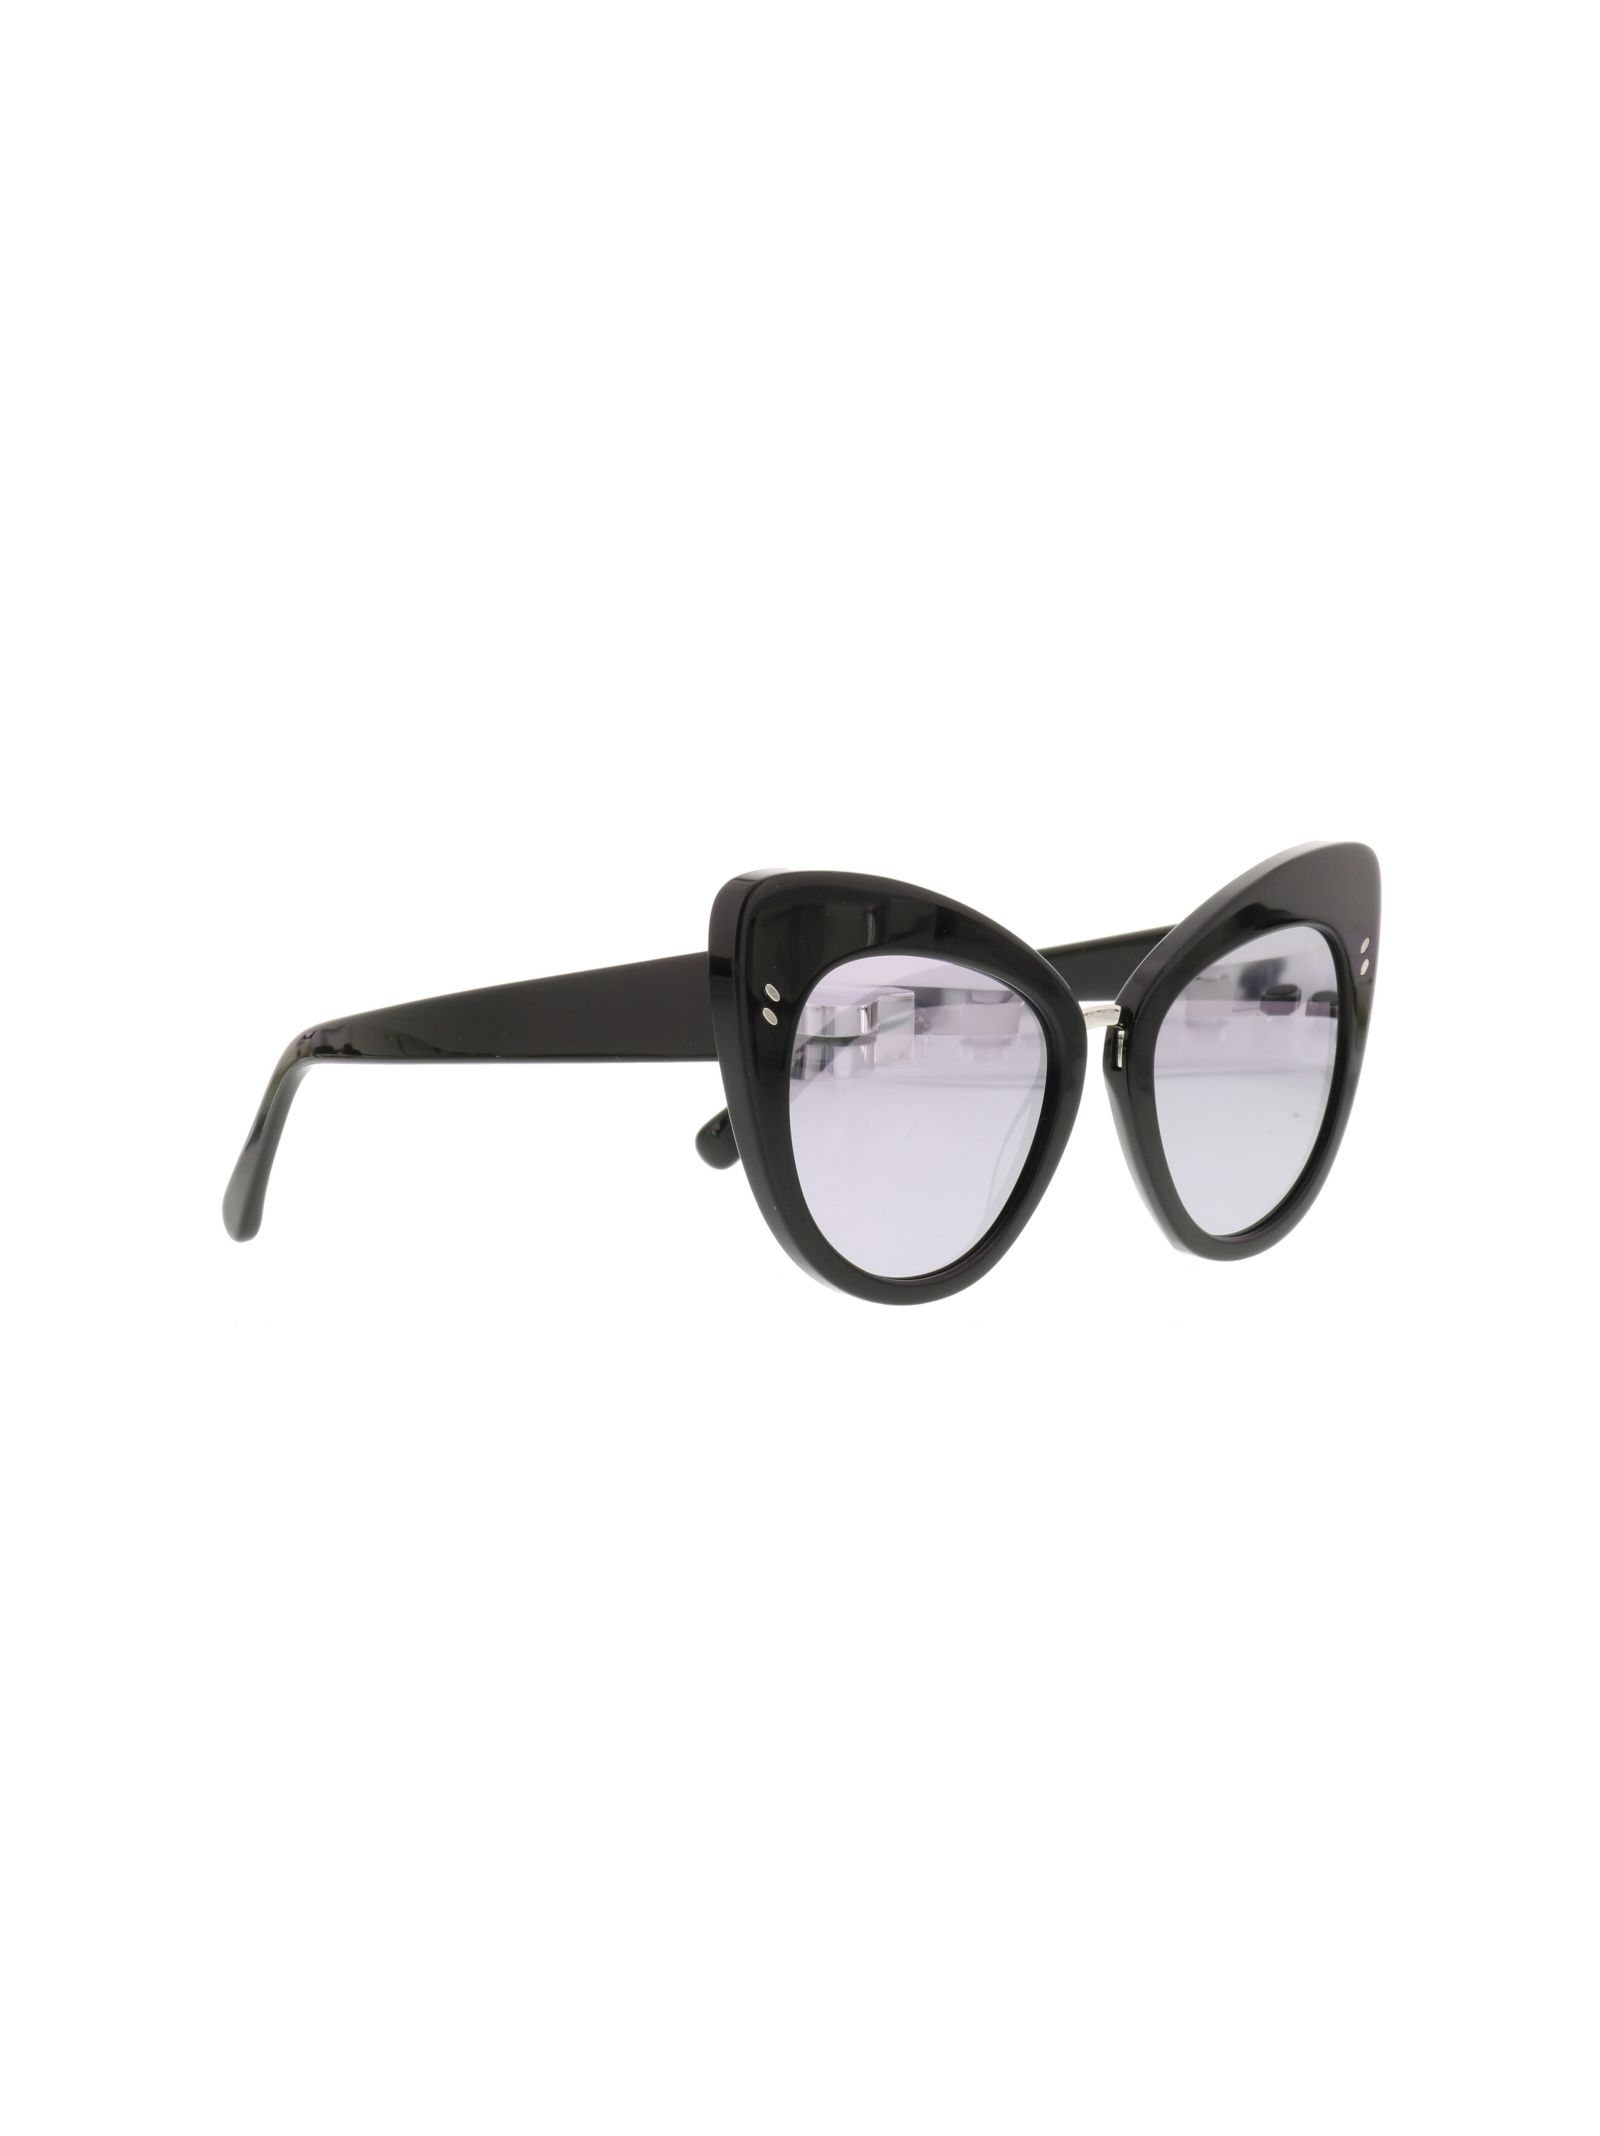 Stella Mccartney Cat Eye Sunglasses - Stella McCartney - Andrea 2